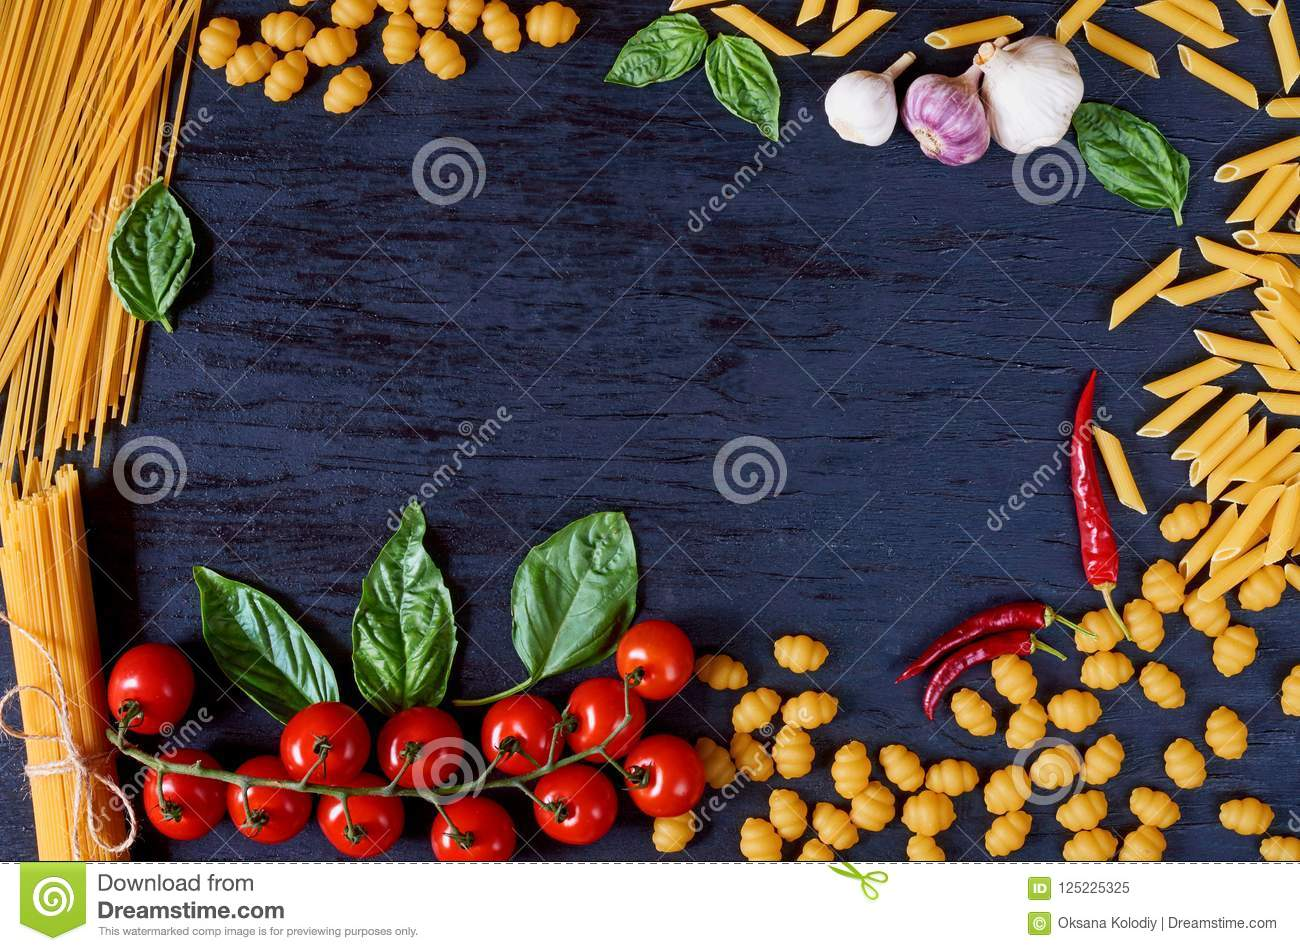 Frame of Italian traditional food, spices and ingredients for cooking as basil, cherry tomatoes, garlic and various pasta